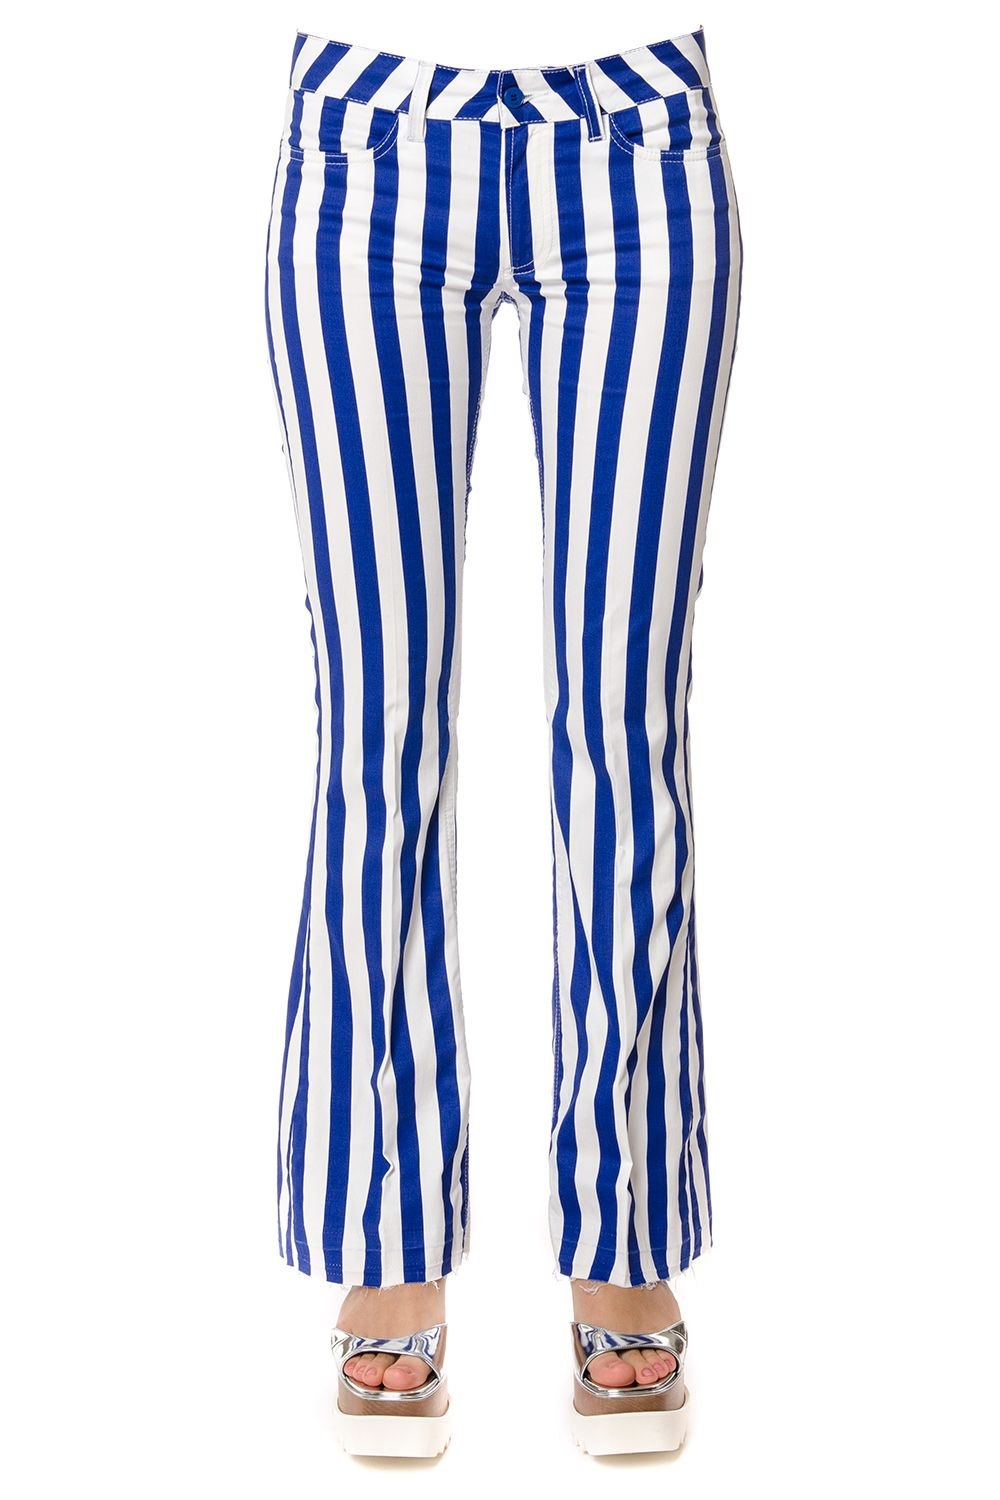 Dondup Striped Cotton Trousers